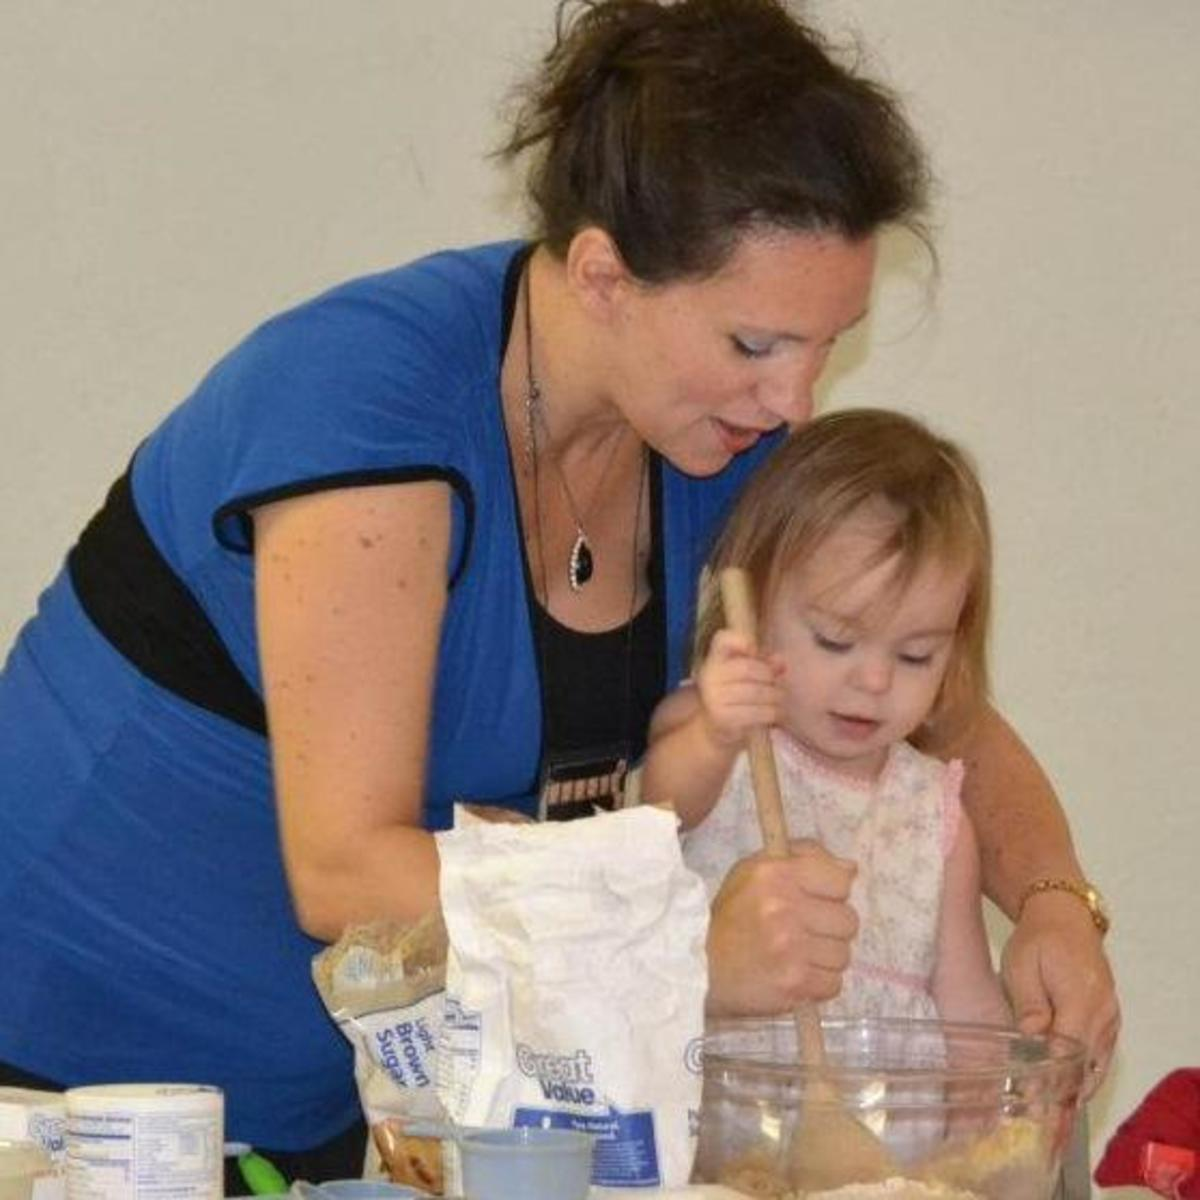 Toddlers love to help cook and bake.